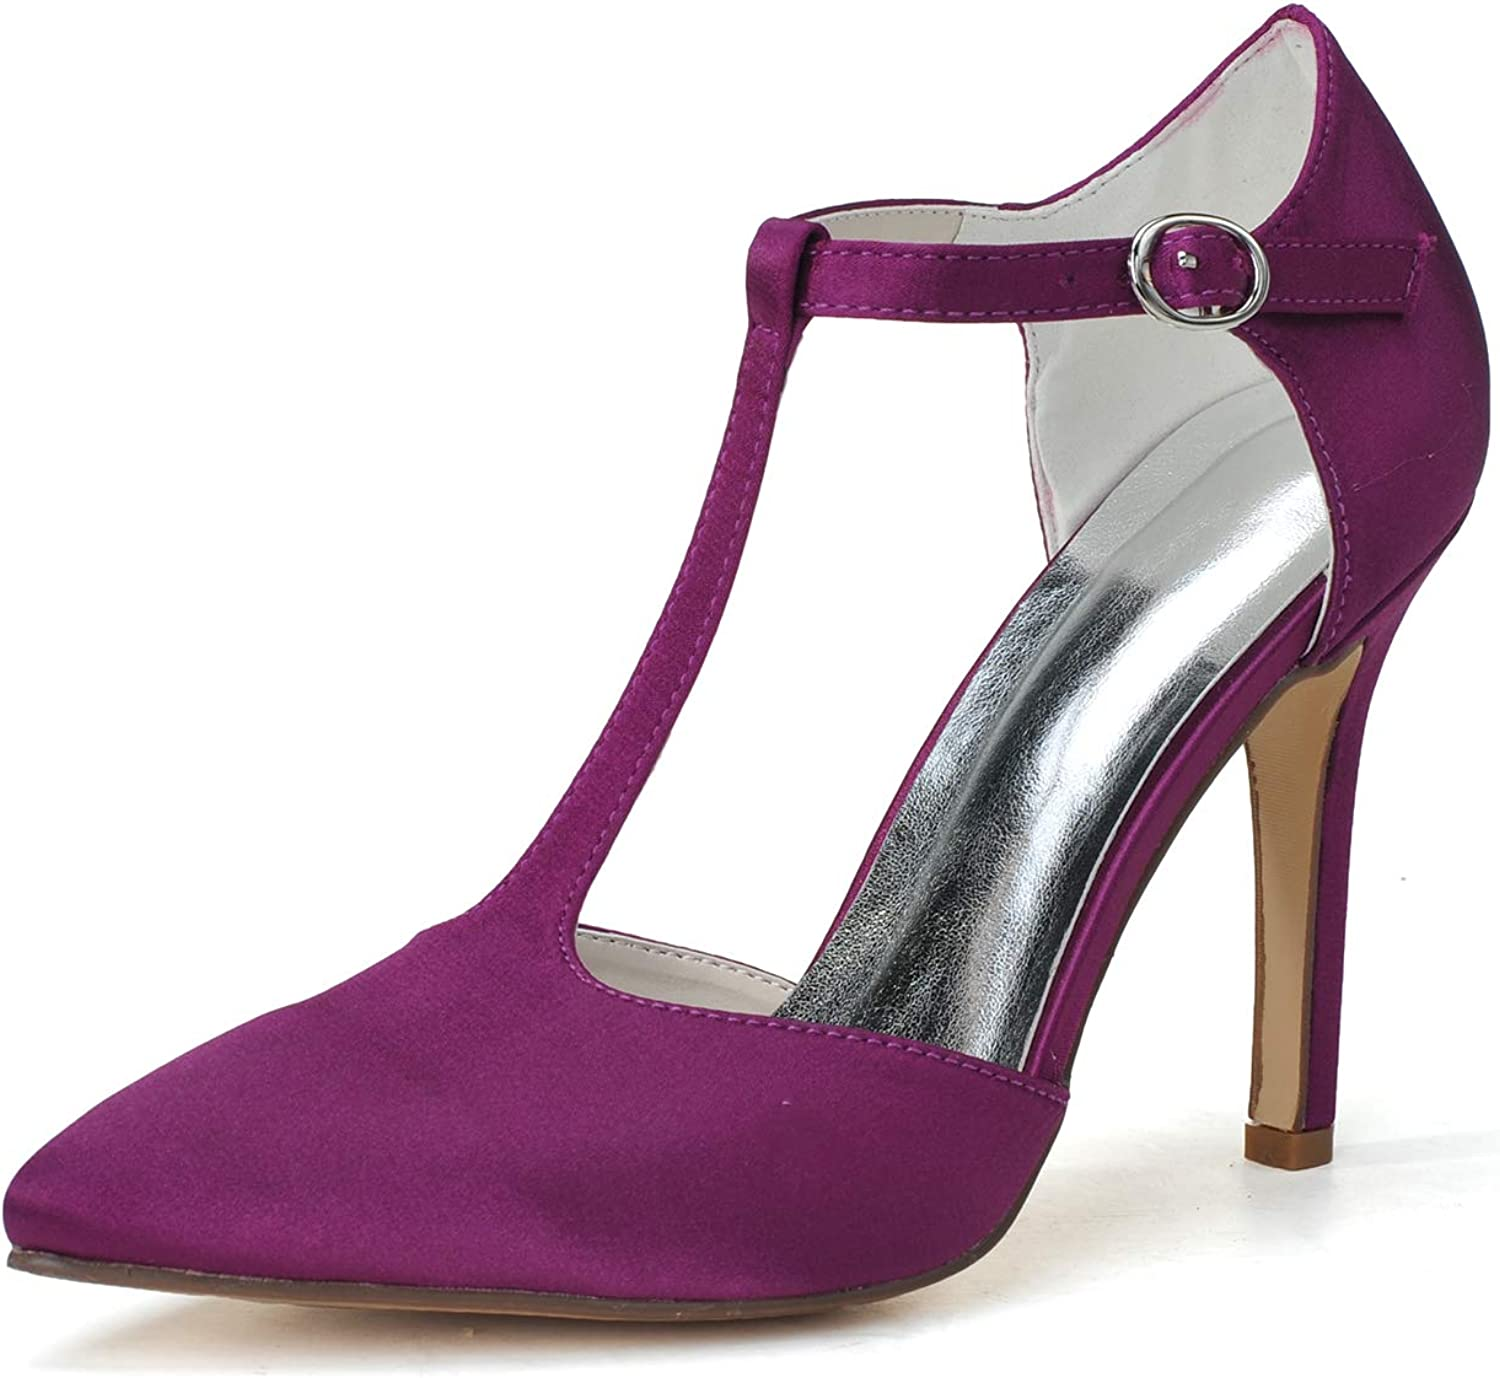 YUGUO High Heels Satin High-Heeled Ladies Versatile Pointed Single shoes Beautifully Matched with T-Strap Buckle Female Summer